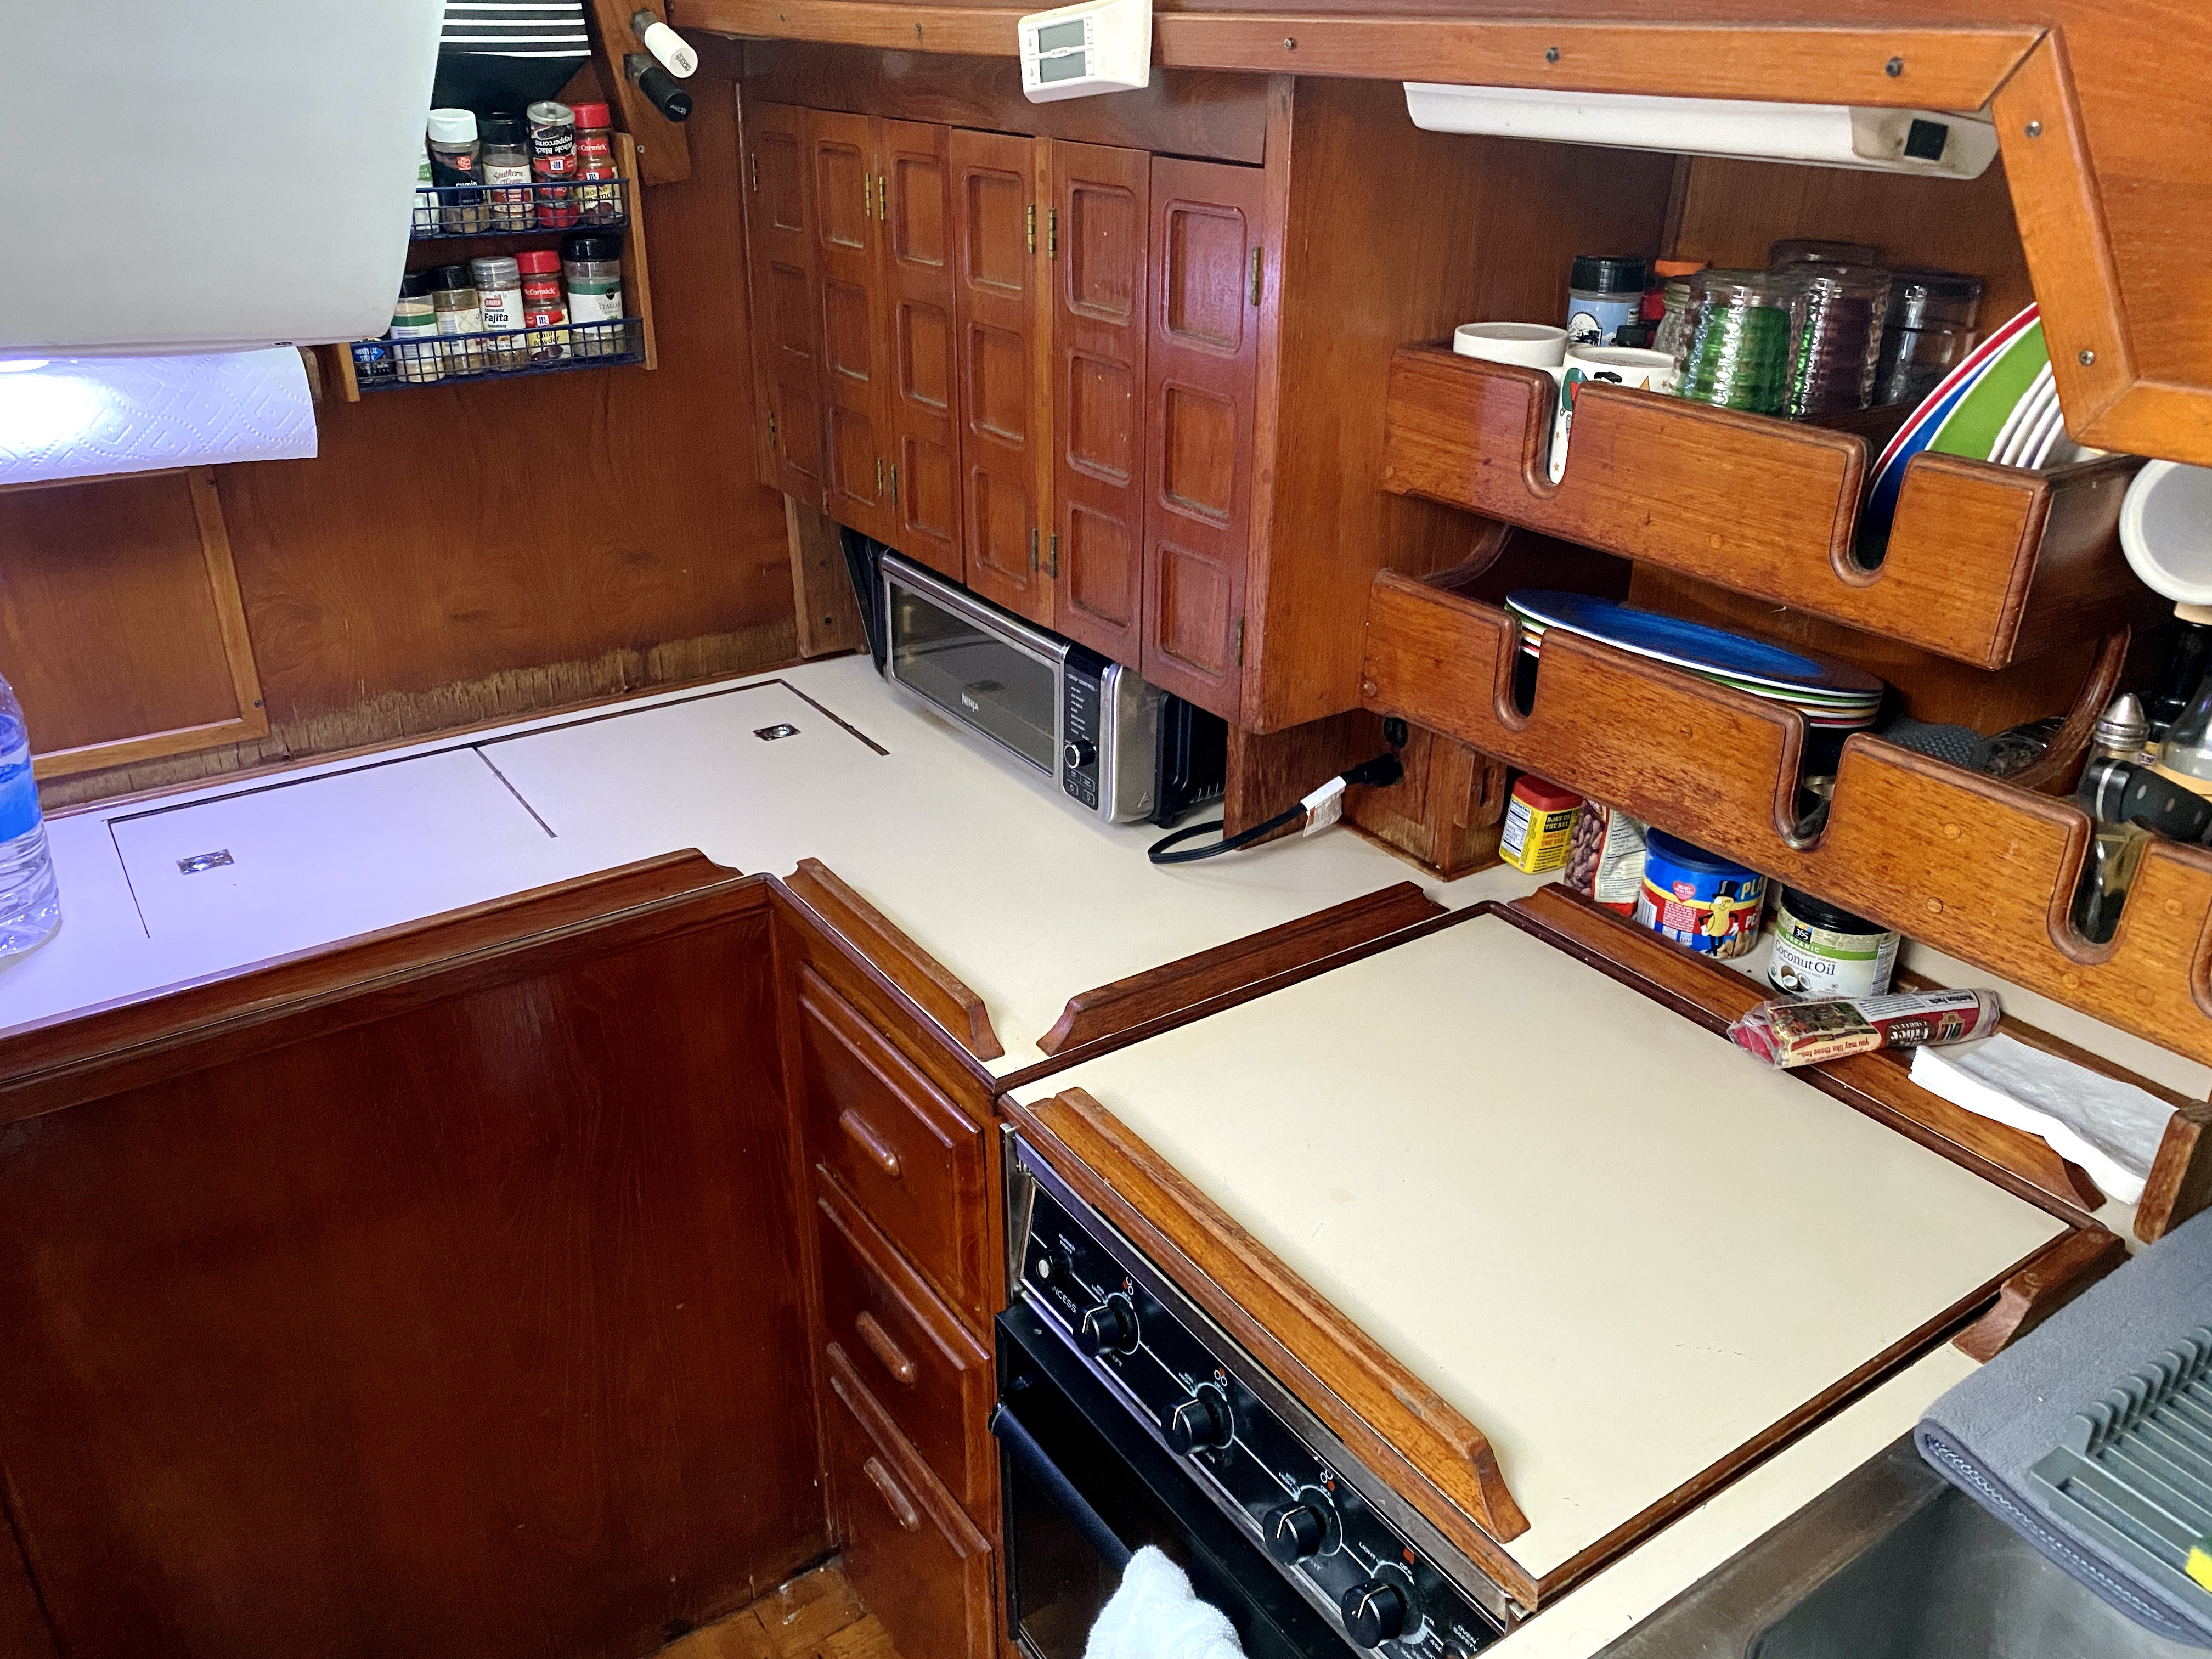 Endeavour 40 Center Cockpit - galley with ice box, oven, stove, toaster